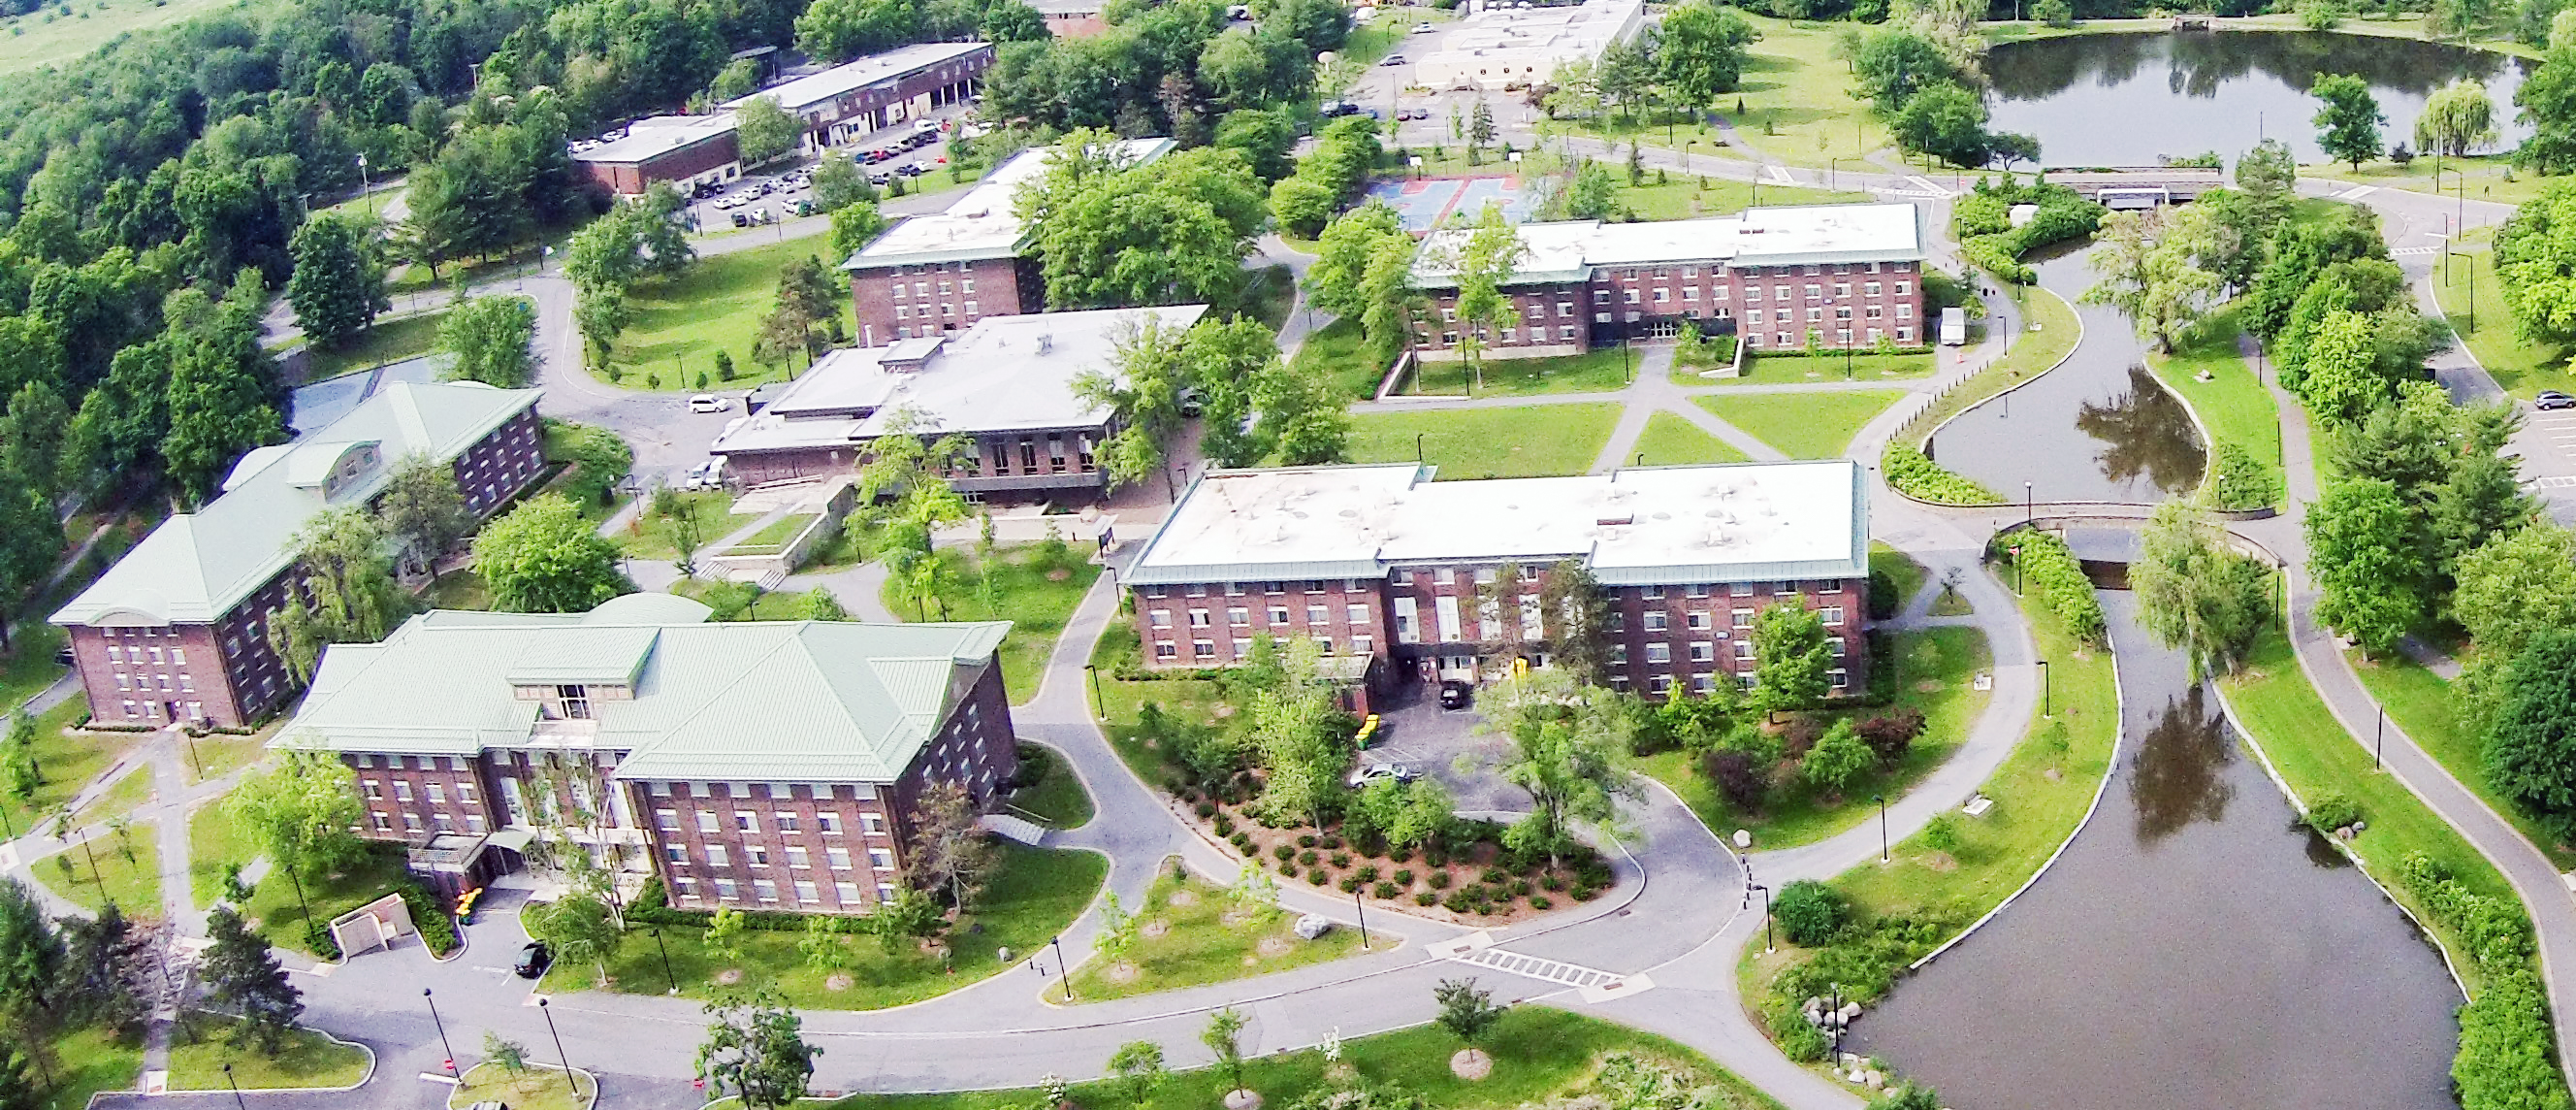 Suny New Paltz Academic Calendar Spring 2022.College Council Passes Resolution To Assign New Building Names To Hasbrouck Complex Suny New Paltz News